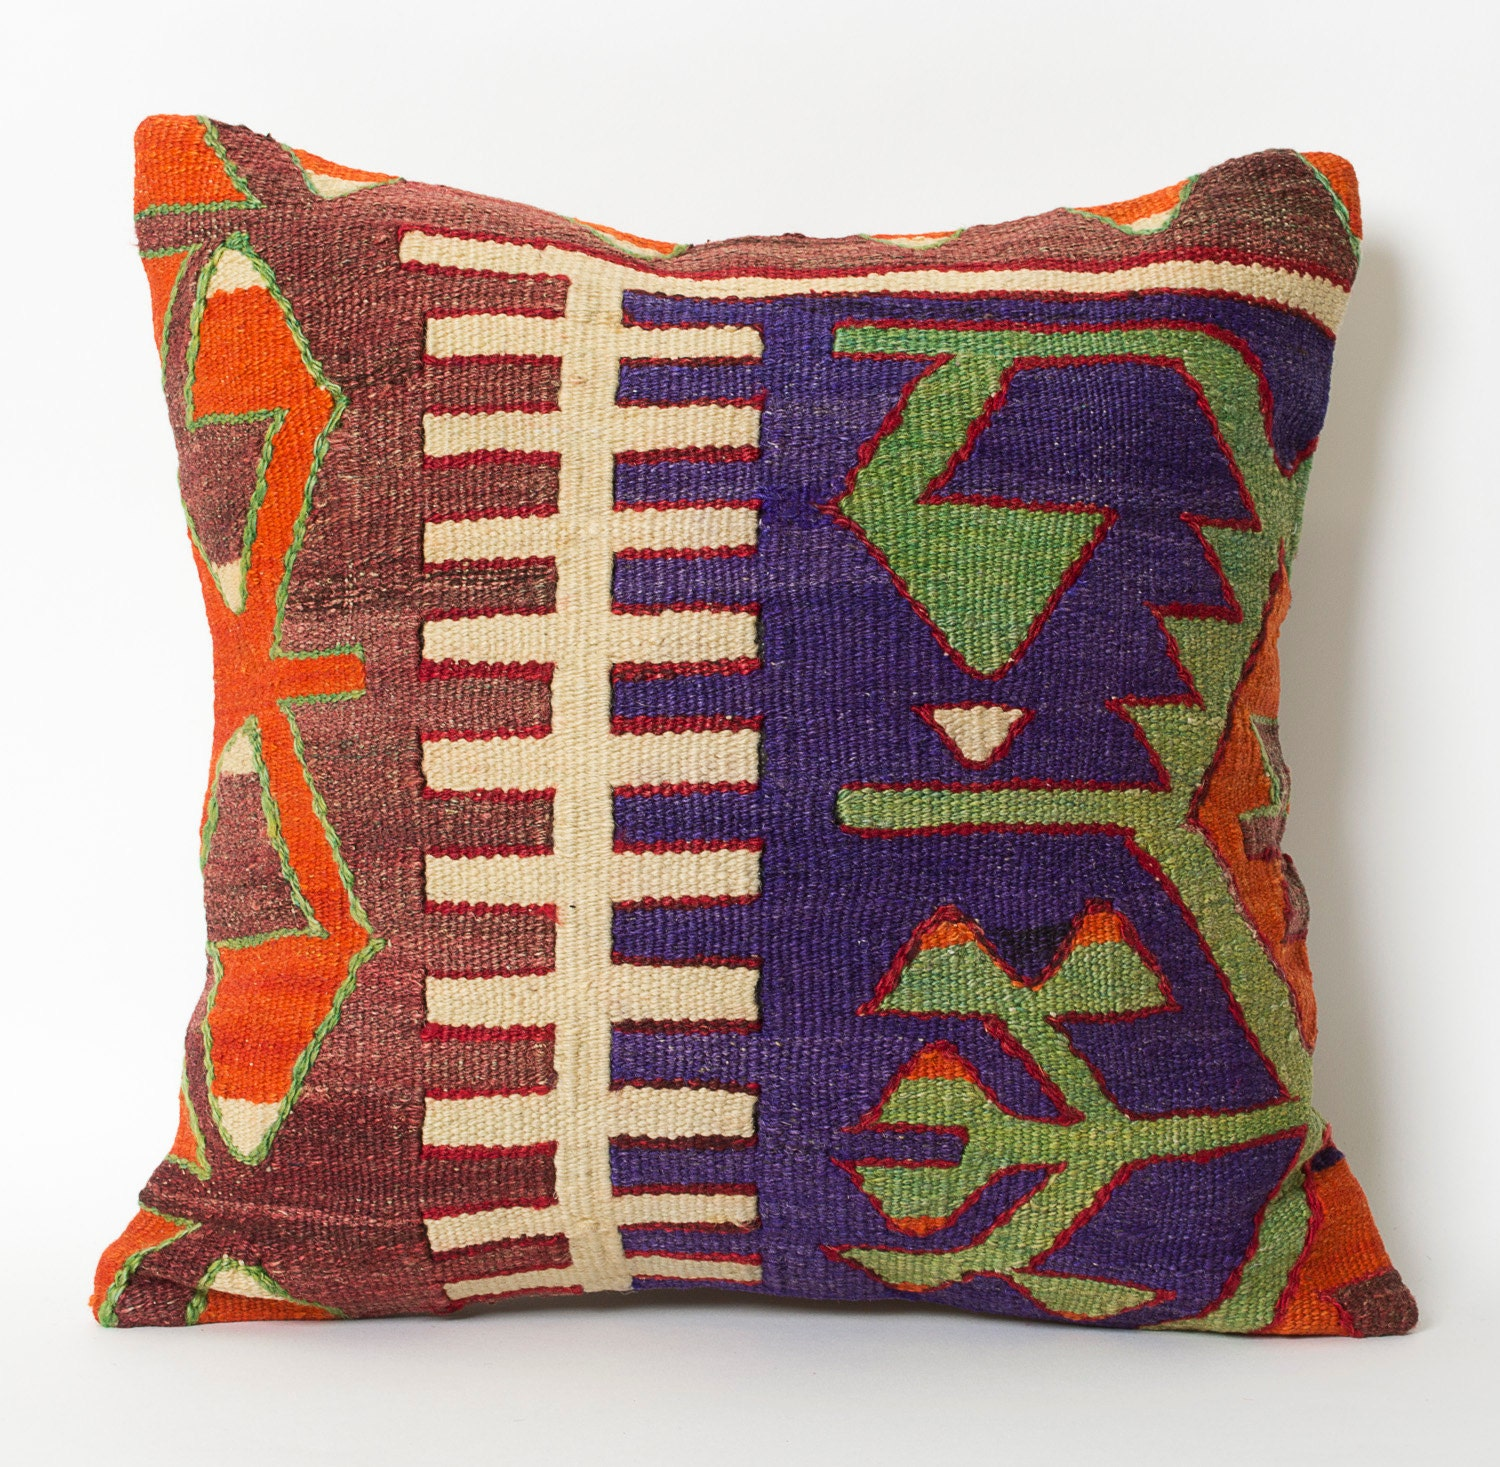 Decorative Pillows Kilim : Kilim Pillowcase Decorative Sofa Pillows Kilim by pillowme